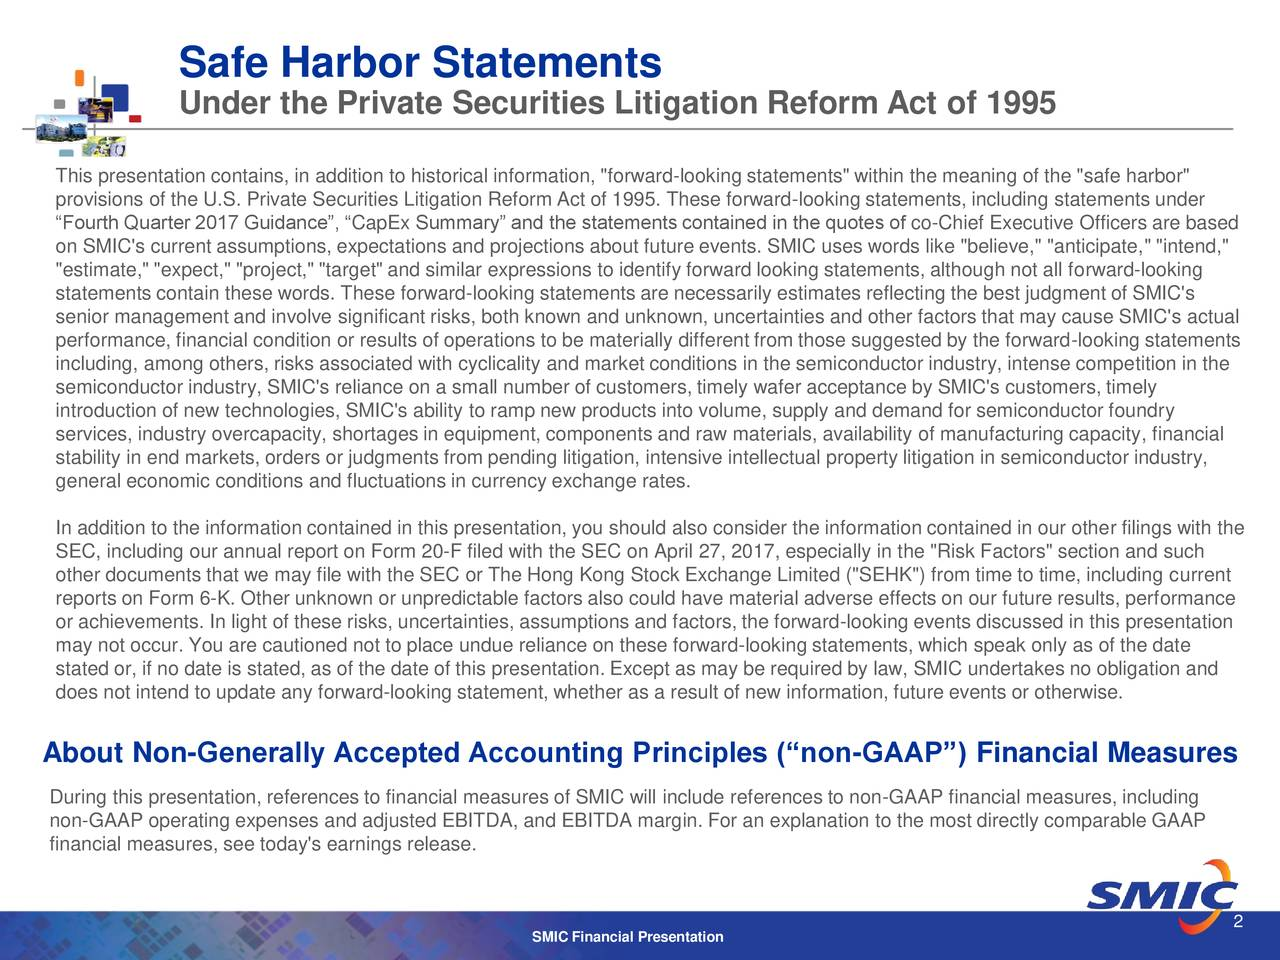 """Under the Private Securities Litigation Reform Act of 1995 This presentation contains, in addition to historical information, """"forward-looking statements"""" within the meaning of the """"safe harbor"""" provisions of the U.S. Private Securities Litigation Reform Act of 1995. These forward-looking statements, including statements under """"Fourth Quarter 2017 Guidance"""", """"CapEx Summary"""" and the statements contained in the quotes of co-Chief Executive Officers are based on SMIC's current assumptions, expectations and projections about future events. SMIC uses words like """"believe,"""" """"anticipate,"""" """"intend,"""" """"estimate,"""" """"expect,"""" """"project,"""" """"target"""" and similar expressions to identify forward looking statements, although not all forward-looking statements contain these words. These forward-looking statements are necessarily estimates reflecting the best judgment of SMIC's senior management and involve significant risks, both known and unknown, uncertainties and other factors that may cause SMIC's actual performance, financial condition or results of operations to be materially different from those suggested by the forward-looking statements including, among others, risks associated with cyclicality and market conditions in the semiconductor industry, intense competition in the semiconductor industry, SMIC's reliance on a small number of customers, timely wafer acceptance by SMIC's customers, timely introduction of new technologies, SMIC's ability to ramp new products into volume, supply and demand for semiconductor foundry services, industry overcapacity, shortages in equipment, components and raw materials, availability of manufacturing capacity, financial stability in end markets, orders or judgments from pending litigation, intensive intellectual property litigation in semiconductor industry, general economic conditions and fluctuations in currency exchange rates. In addition to the information contained in this presentation, you should also consider the information contained in o"""